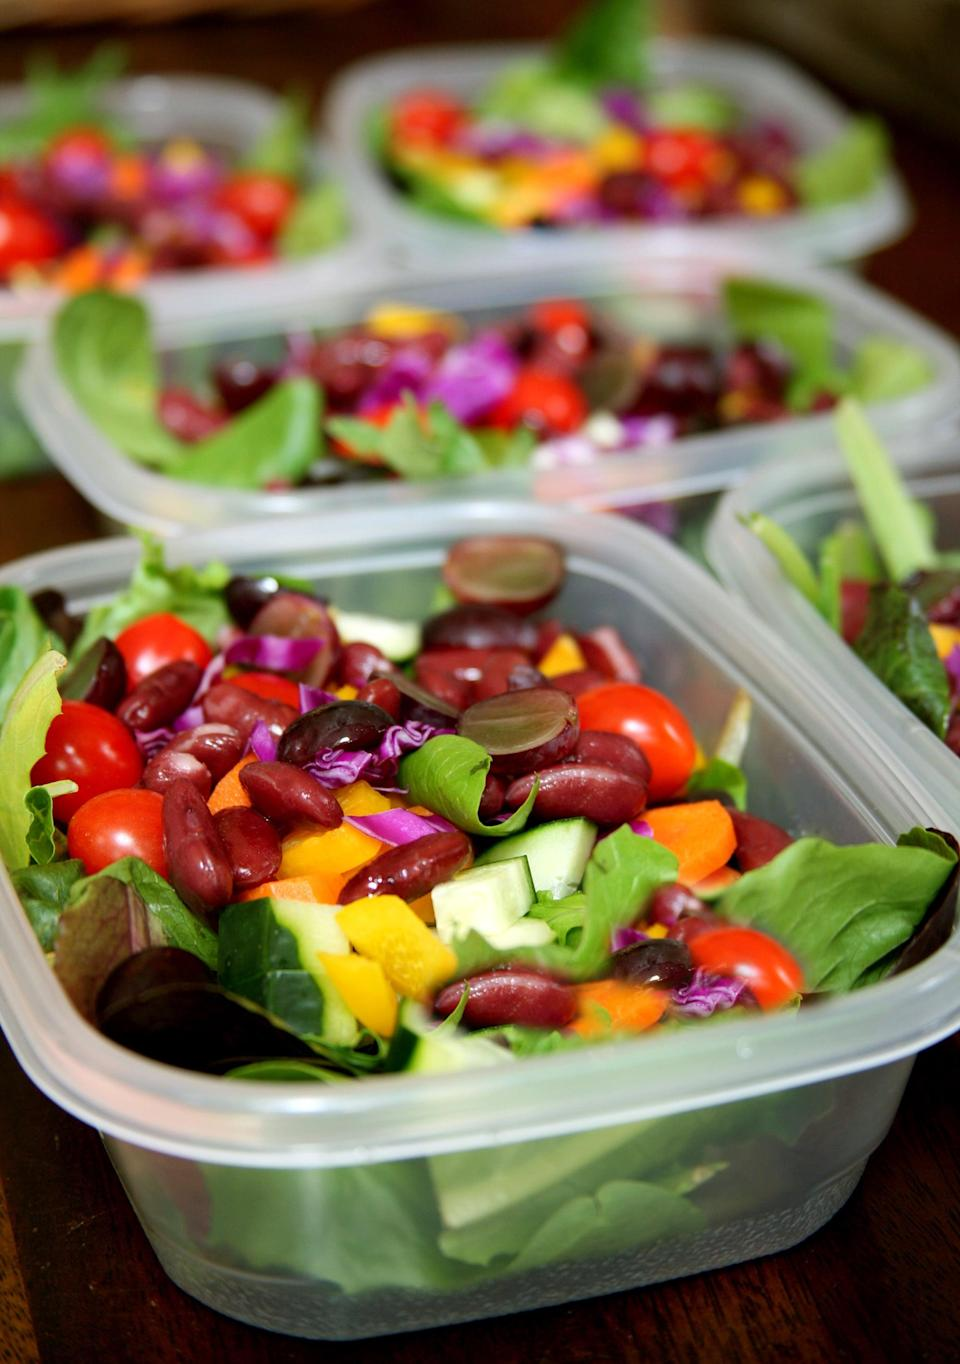 """<p>Choose plastic containers that are flat and rectangular in shape. These not only stack well in your fridge, but they also create more space for the veggies to spread out, preventing sogginess. This method keeps salads fresh for five days. </p> <ol> <li><strong>Start with the greens.</strong> To save time, pick up a package of prewashed salad greens. If you're using greens from your garden or a farmers market, just make sure they're completely dry before packing. Fill the container about three-quarters full of greens (about two to three cups). </li> <li><strong>Add the veggies, beans, and fruit.</strong> Go for carrots, cucumbers, tomatoes (use cherry and keep them whole), peppers, broccoli, chickpeas, kidney beans, corn, peas, or even fruit like grapes or blueberries - whatever your little salad-loving heart desires. Drying off each ingredient with a paper towel will keep them crisper longer. </li> <li><strong>Add protein.</strong> For protein sources like marinated tofu, grilled chicken, hard-boiled eggs, certain types of cheese like cubed cheddar, and cooked (and cooled) whole grains like quinoa or brown rice, add these on top of the first three salads only (Monday's, Tuesday's, and Wednesday's). Then on Wednesday night, add protein to Thursday's and Friday's containers. Do the same with avocado, nuts and seeds, or very wet fruits like sliced strawberries.</li> <li><strong>Keep dressing separate until the moment you eat your salad.</strong> Purchase a couple dip-size containers (I'm a fan of these small <a href=""""https://www.popsugar.com/fitness/photo-gallery/7104018/image/7465345/Kids-Konserve"""" class=""""link rapid-noclick-resp"""" rel=""""nofollow noopener"""" target=""""_blank"""" data-ylk=""""slk:stainless steel containers from Kids Konserve"""">stainless steel containers from Kids Konserve</a>). Or if you have an office fridge, keep a bottle of dressing there. </li> </ol>"""